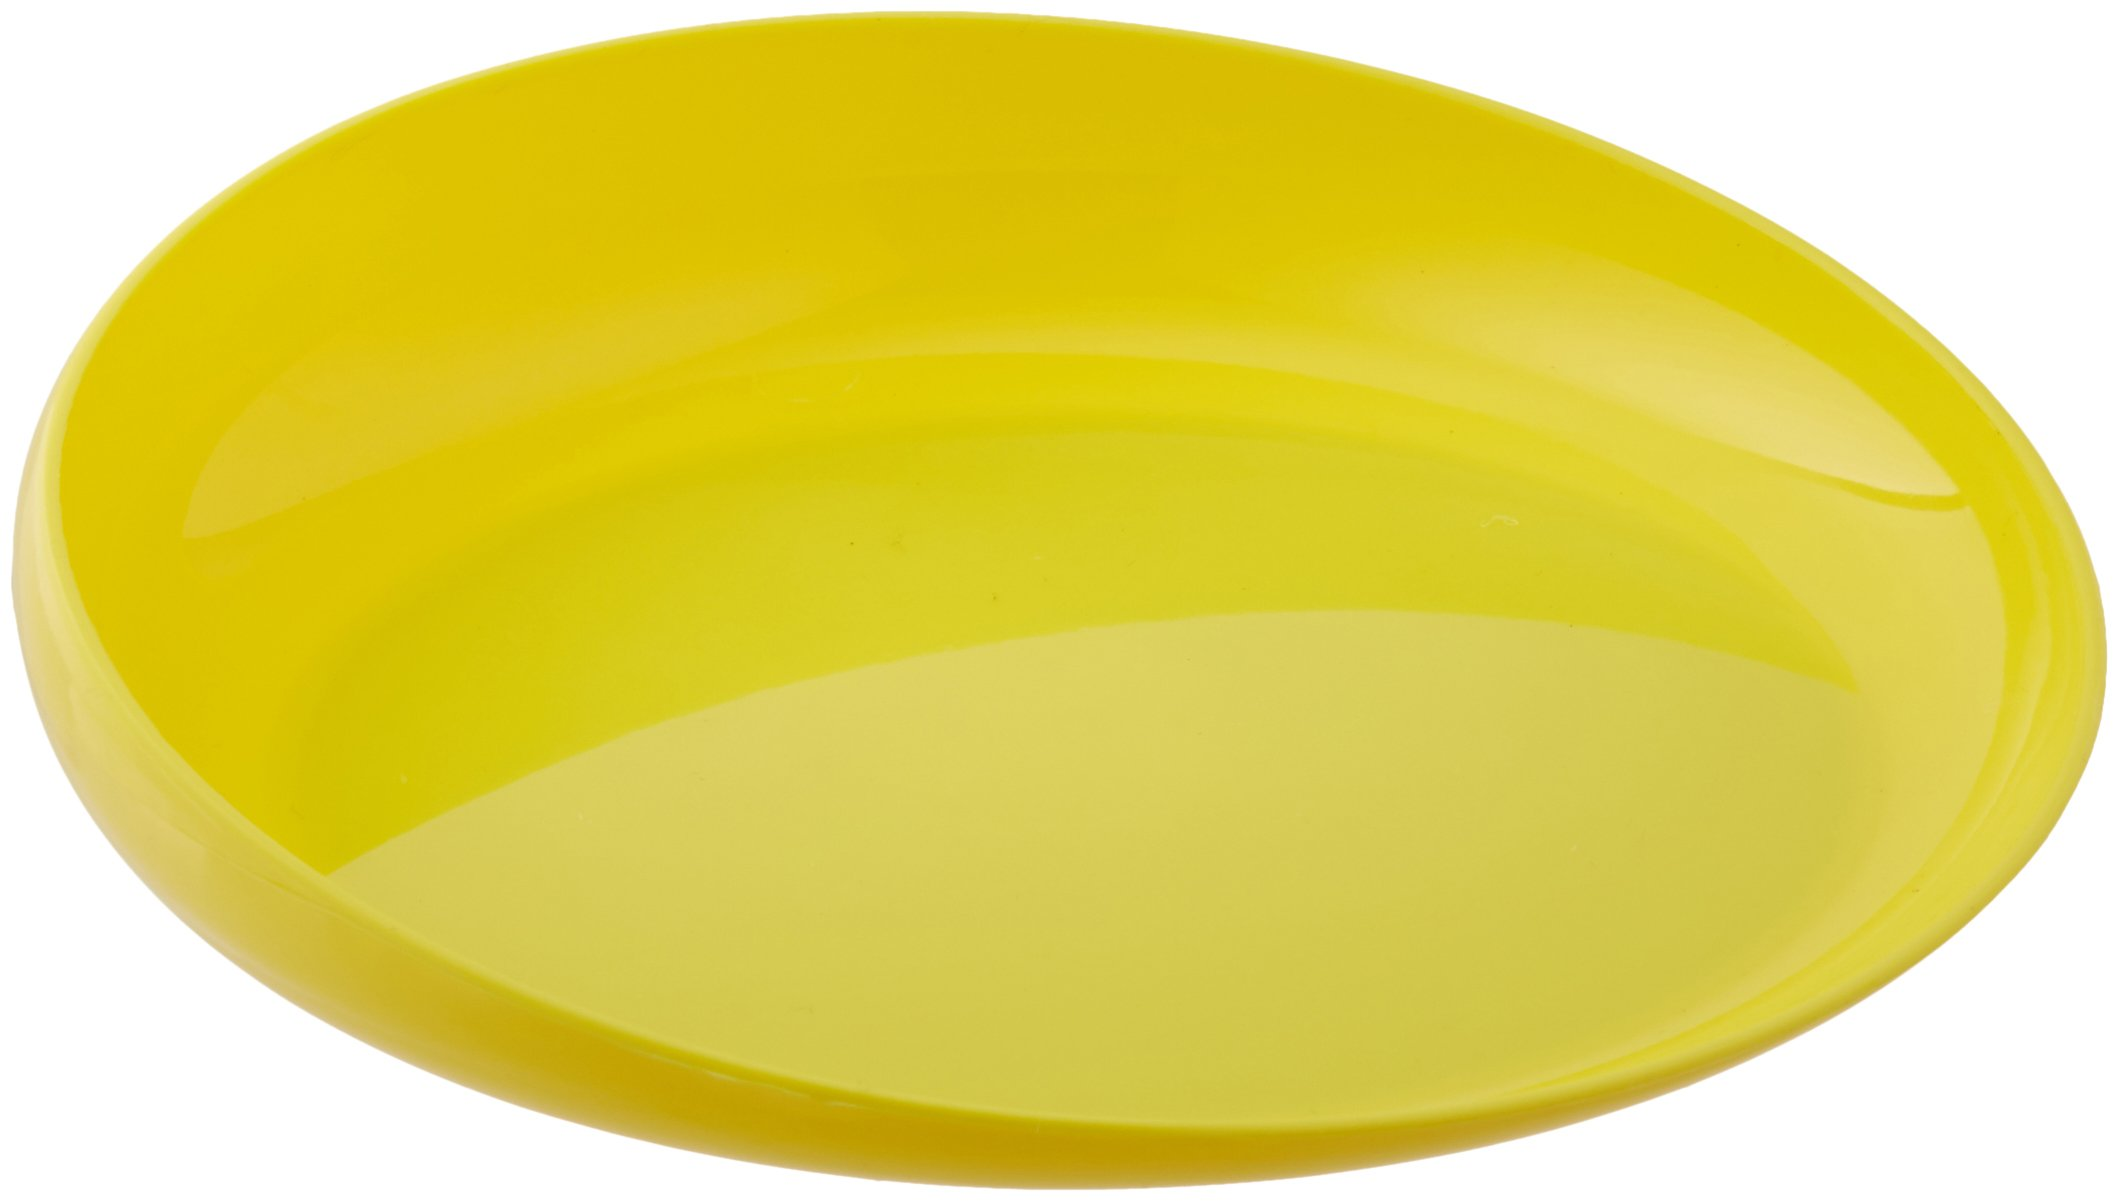 Sammons Preston Yellow Round Scoop Dish, Unbreakable 8'' Scooper Bowl for Elderly, Disabled, & Handicapped, Plate with Non Skid Rubber Padded Bottom for Independent Eating, Self-Feeding Aid